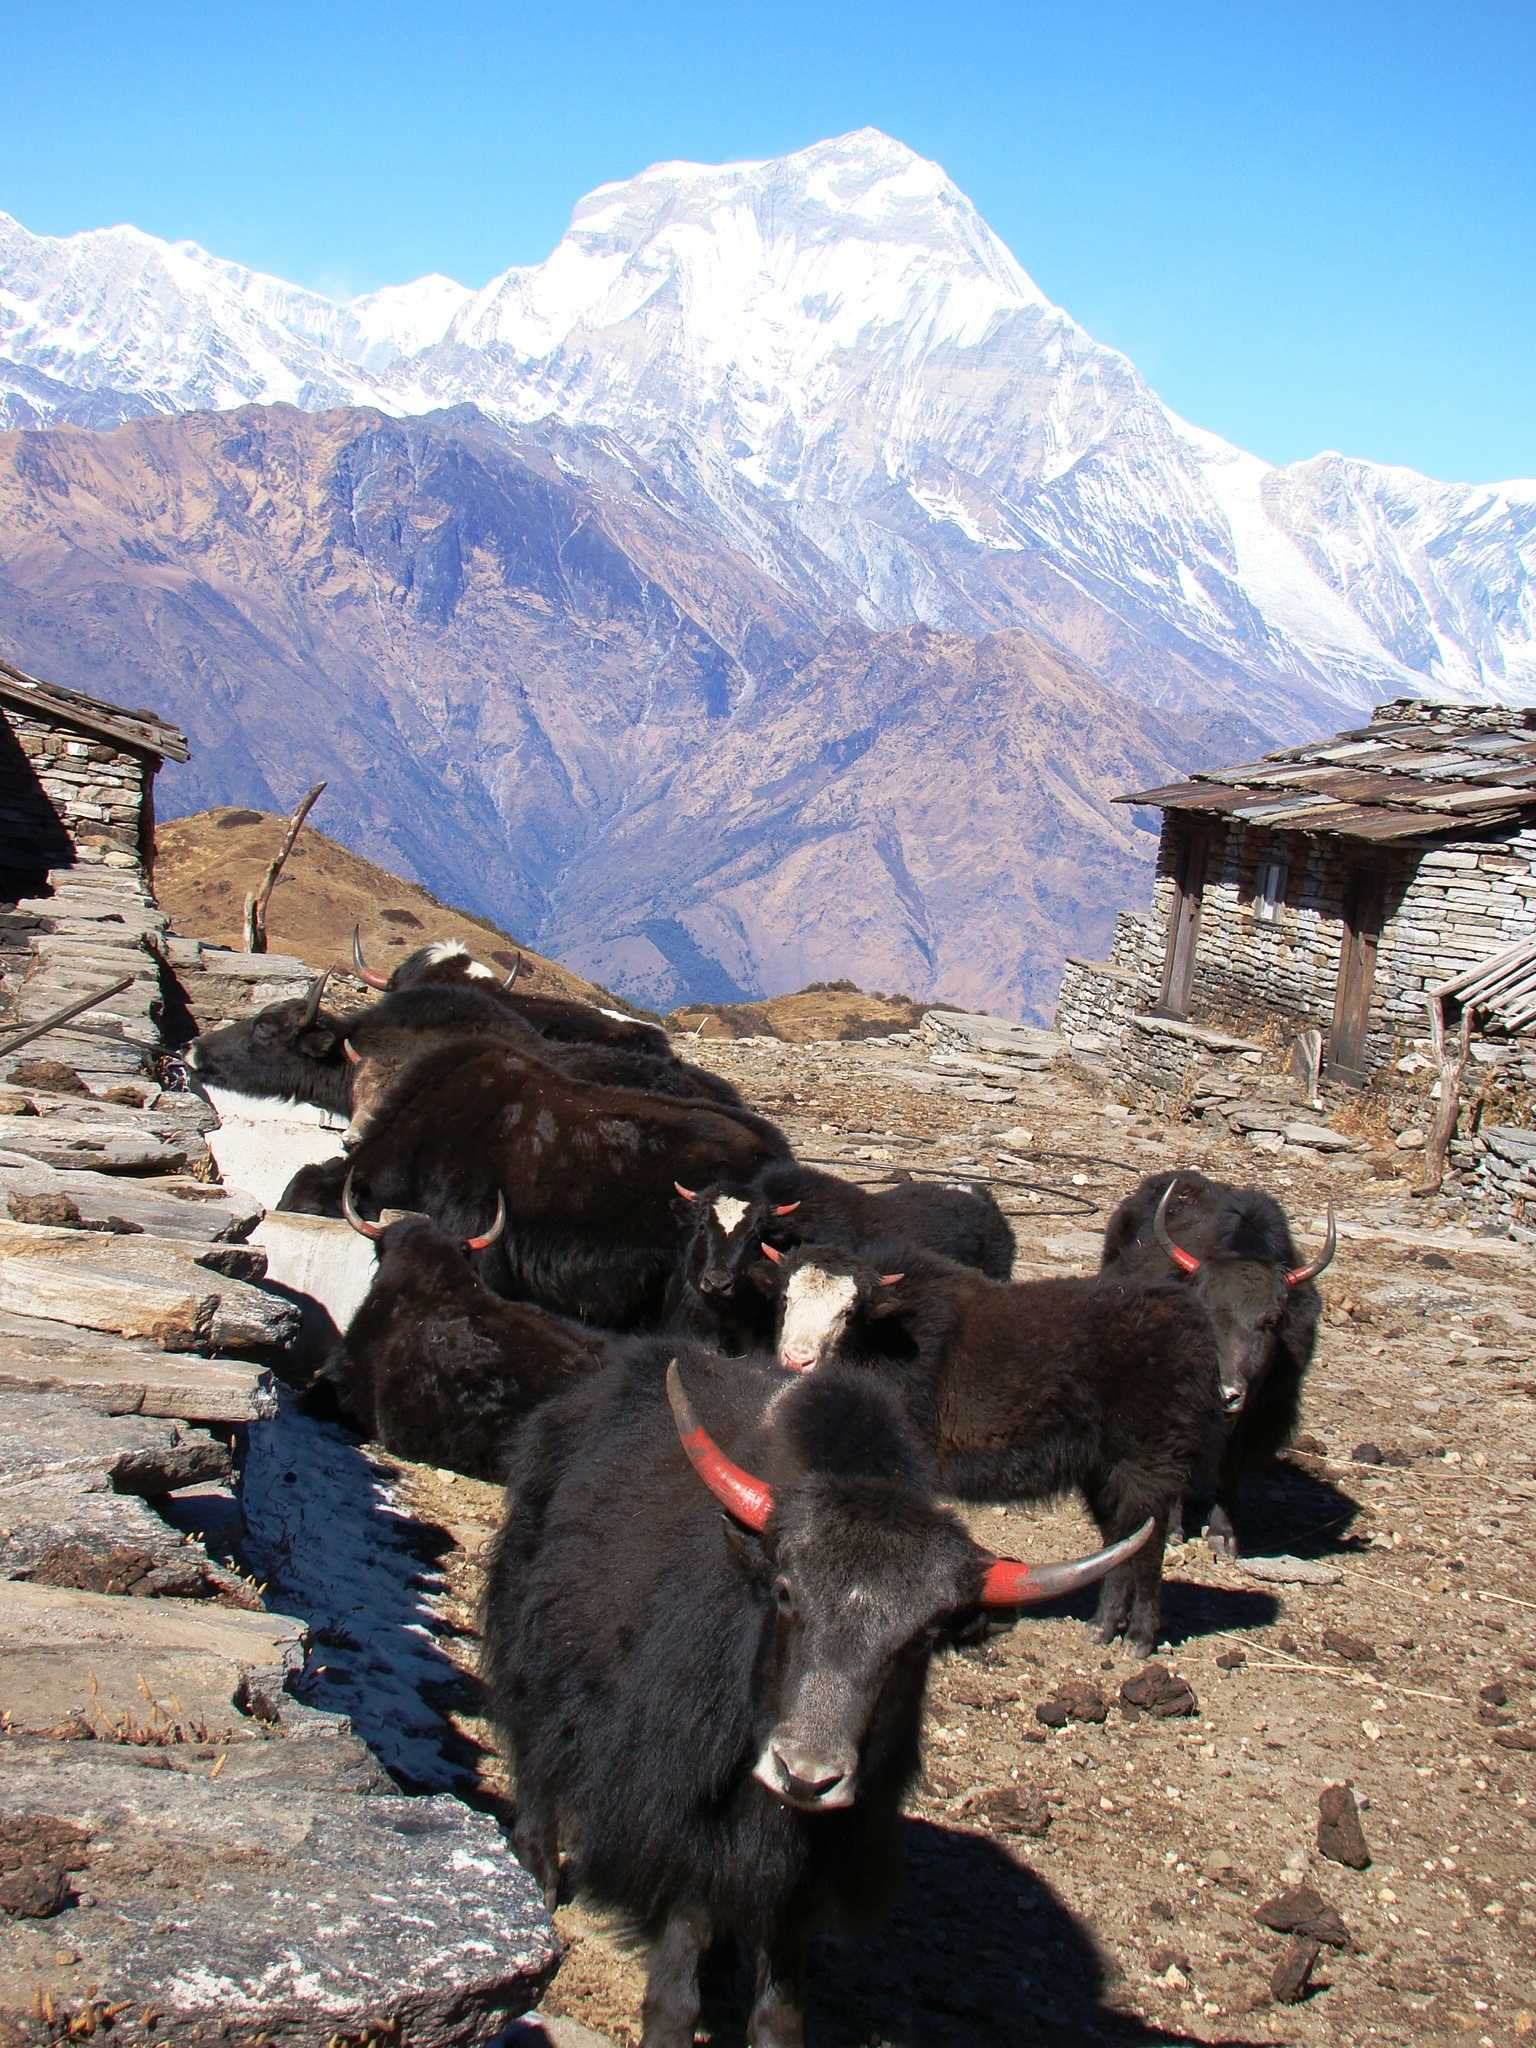 Herds of Yak seen during the Annapurna Community Trek